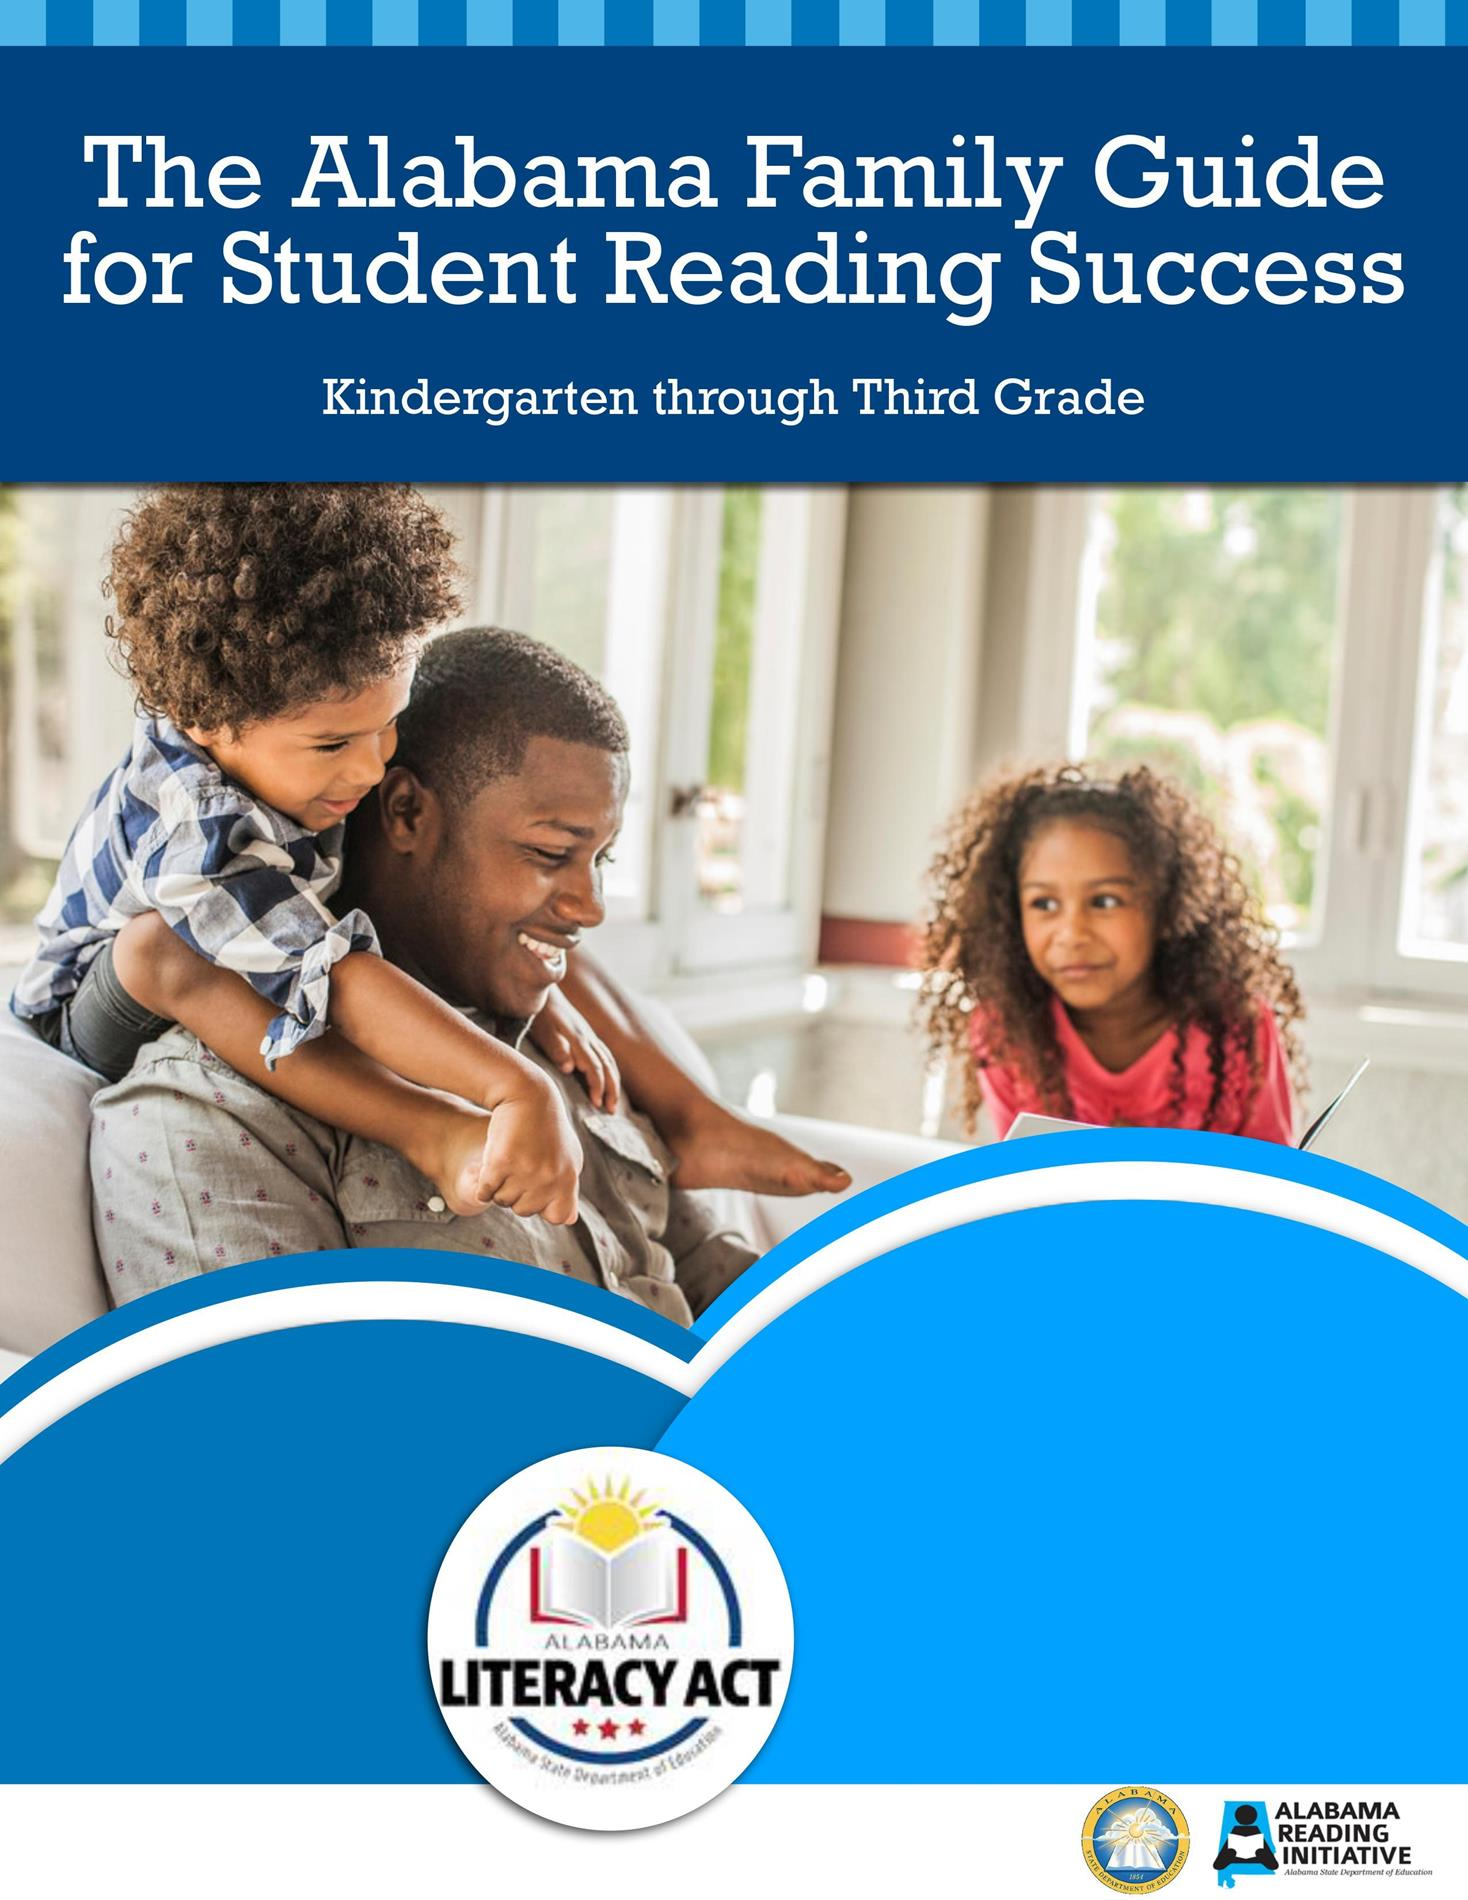 The Alabama Family Guide for Reading Success